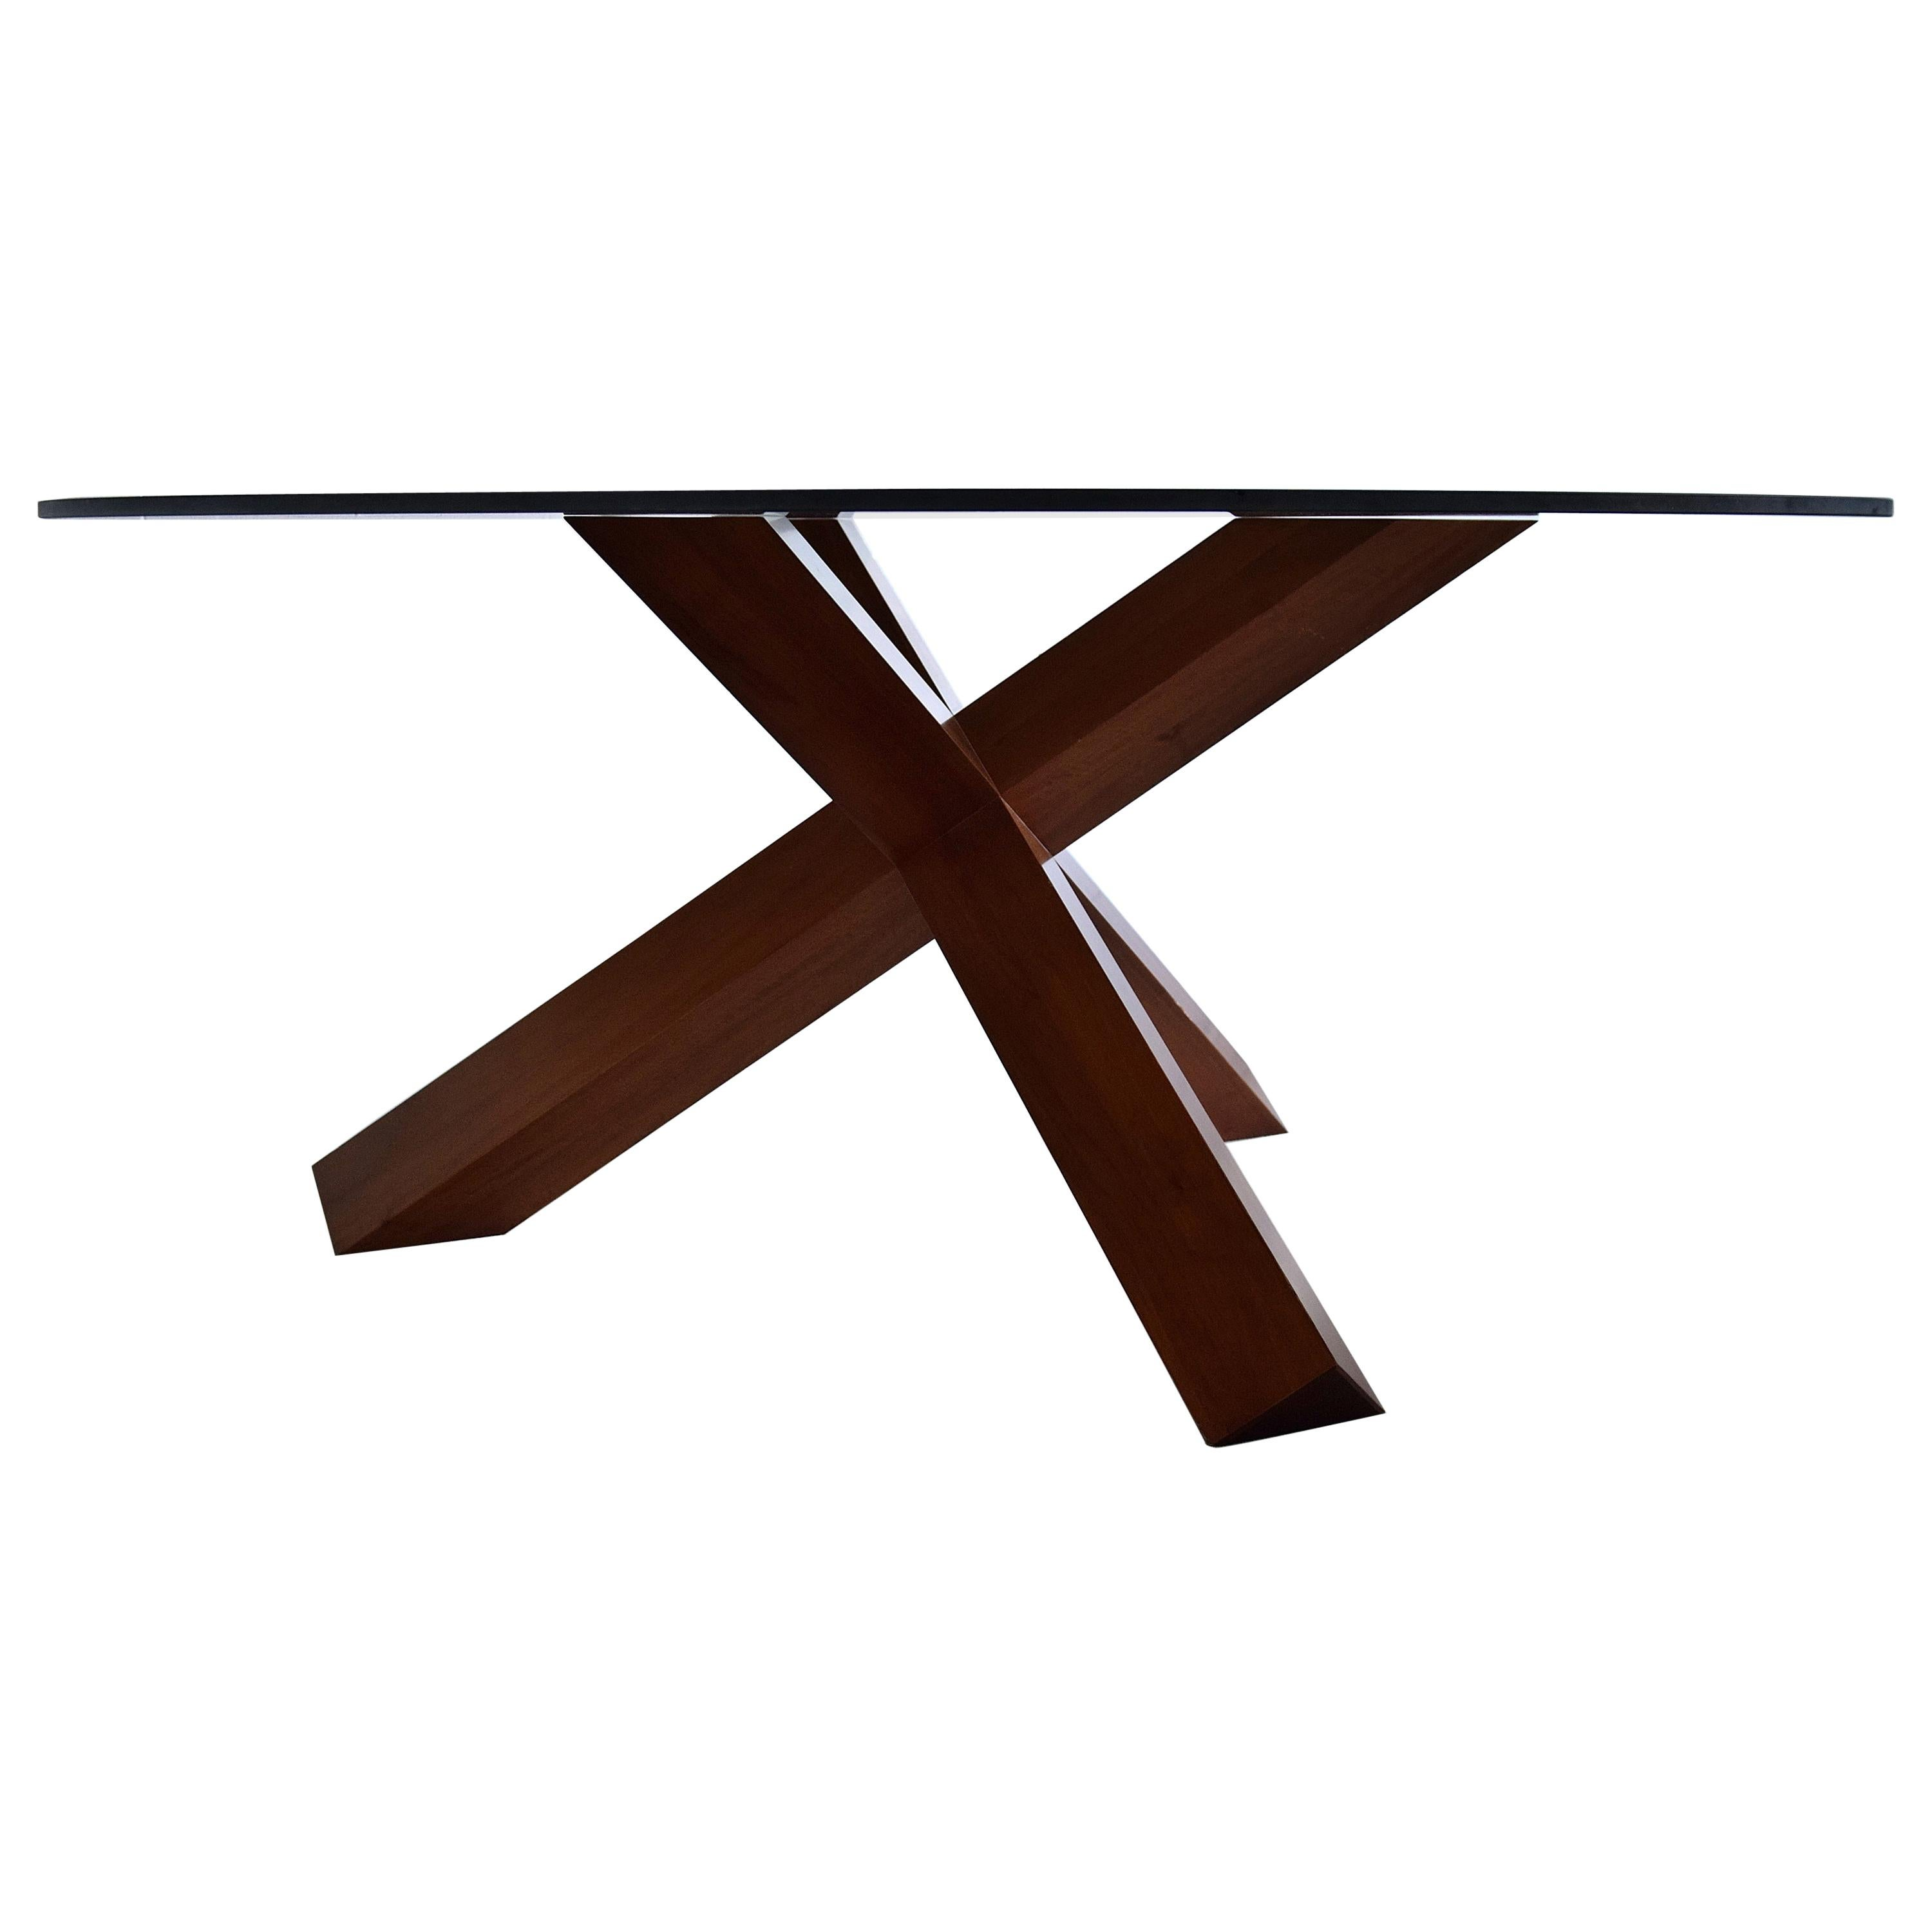 Nutwood and Glass Dining Table La Rotonda by Mario Bellini for Cassina